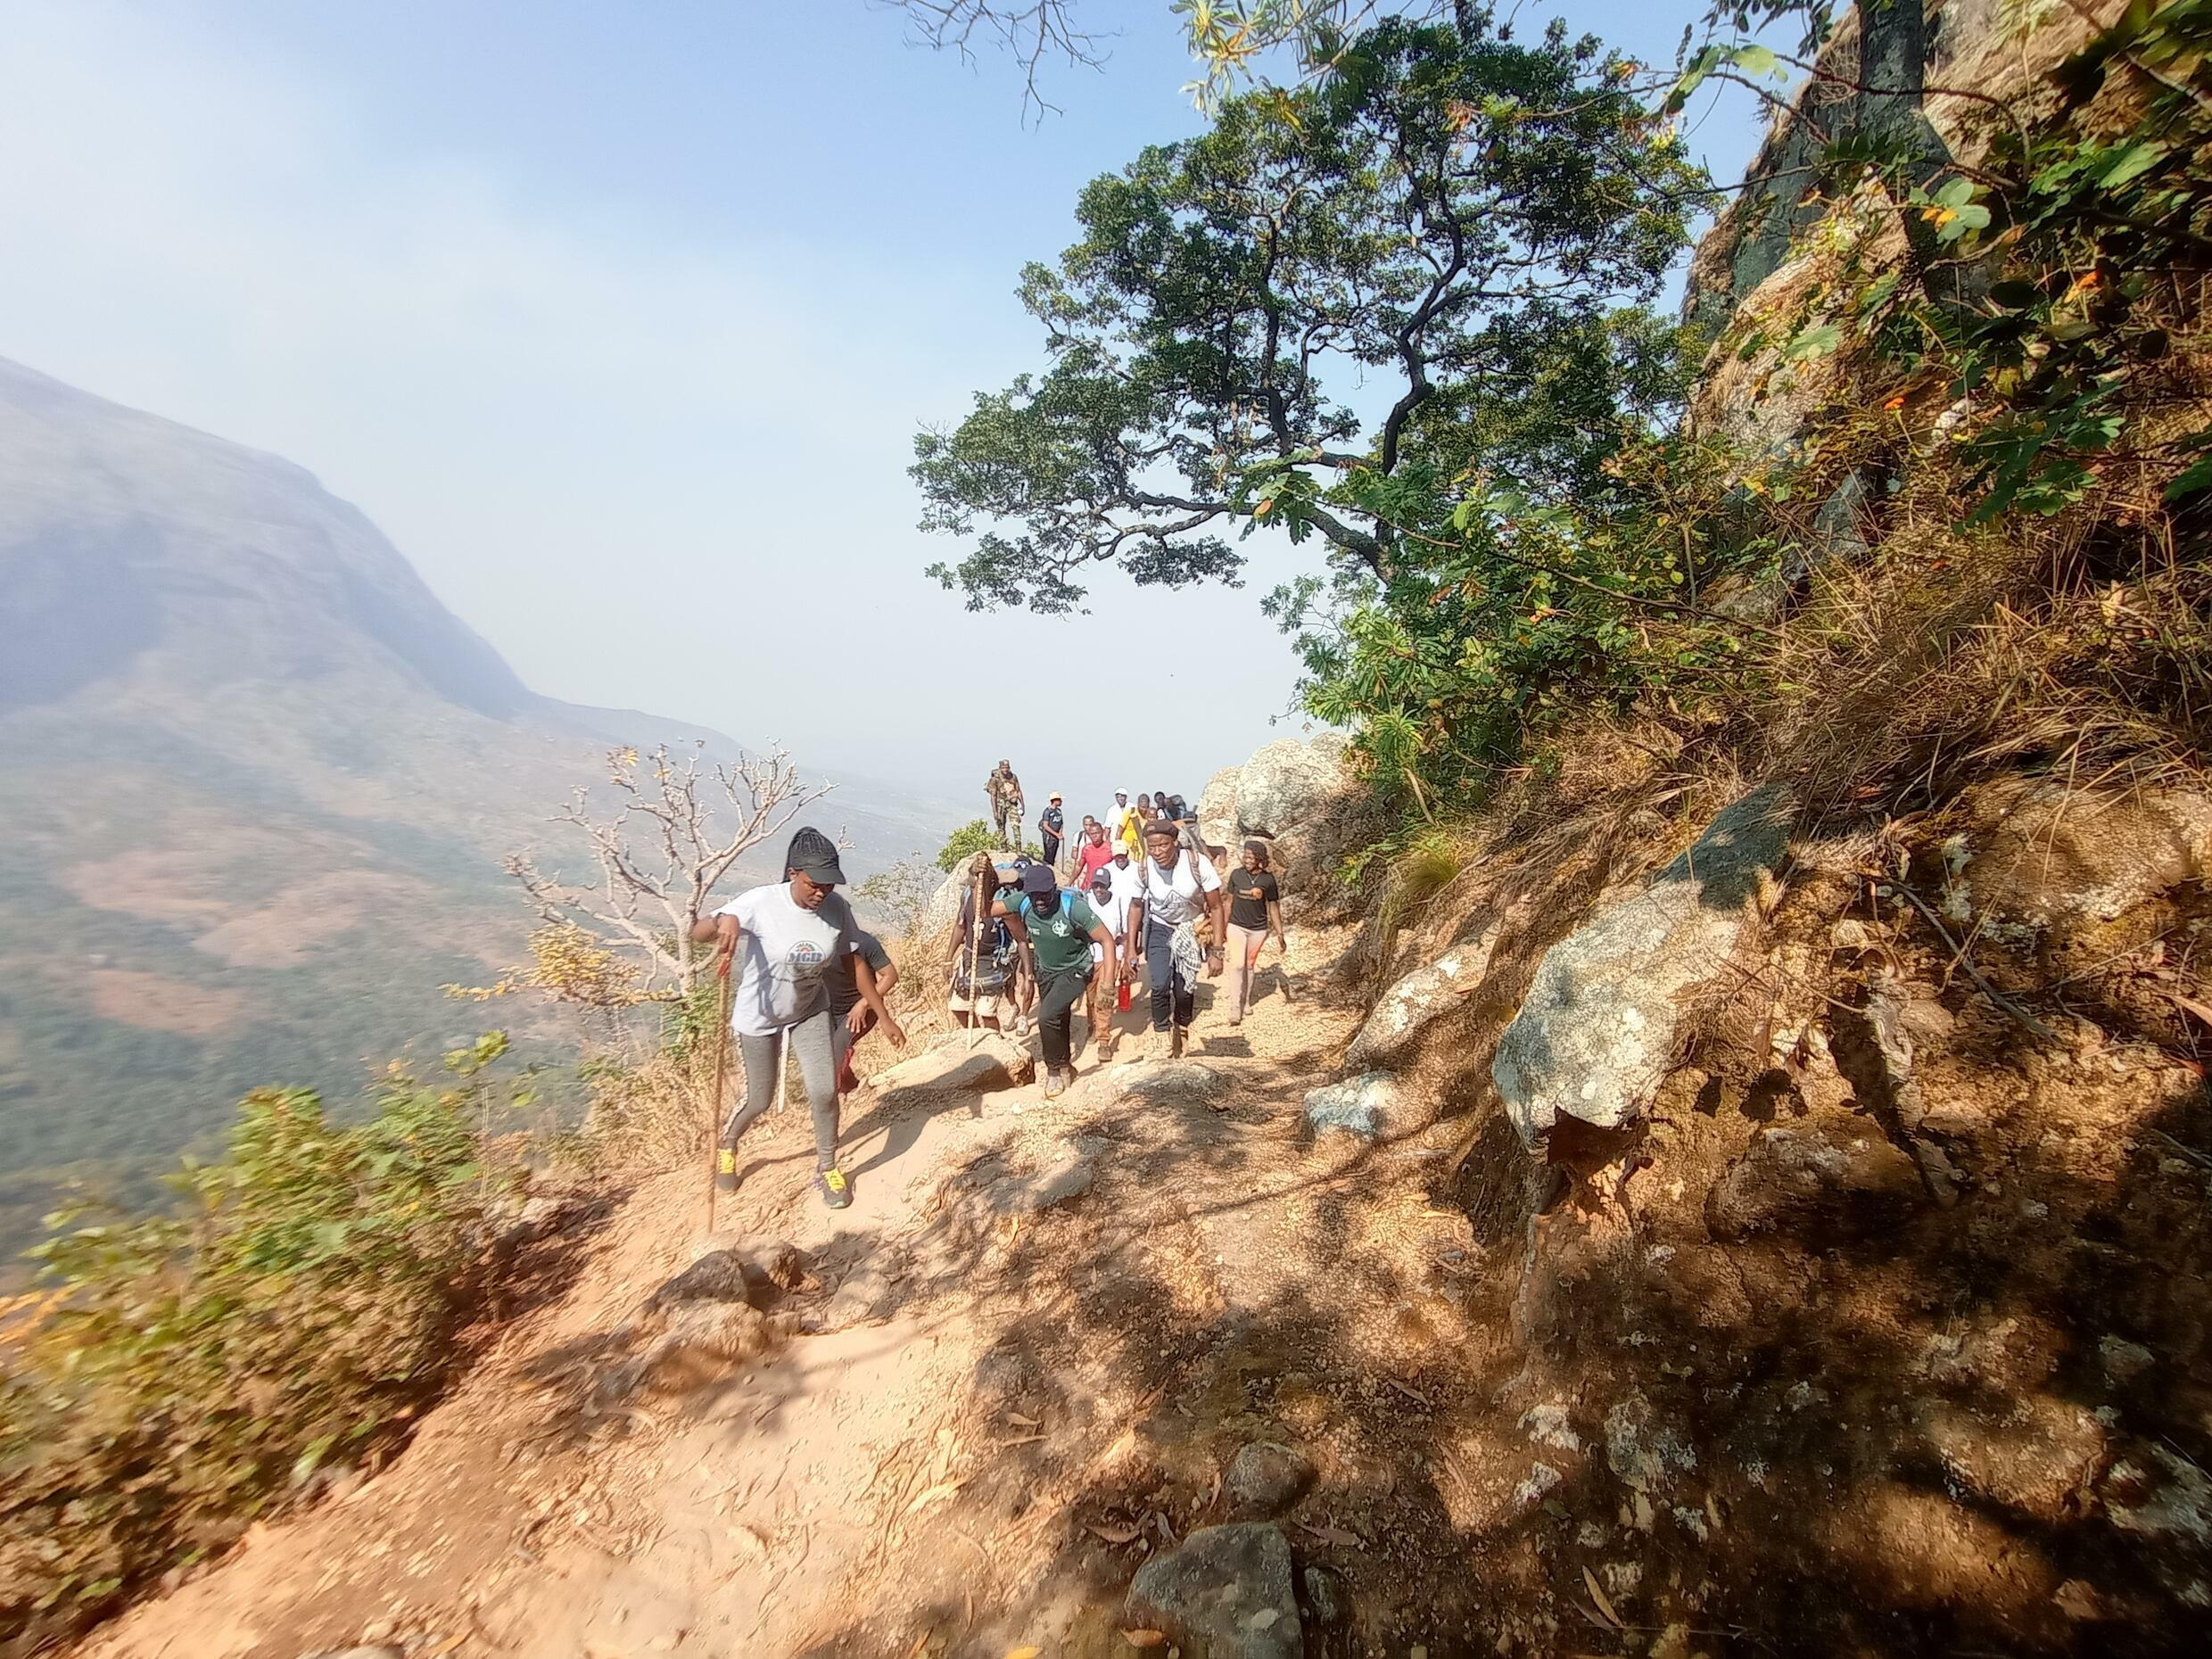 A group of Malawians hiking up Mt. Malanje with musician Lawi to call attention to conservation efforts.